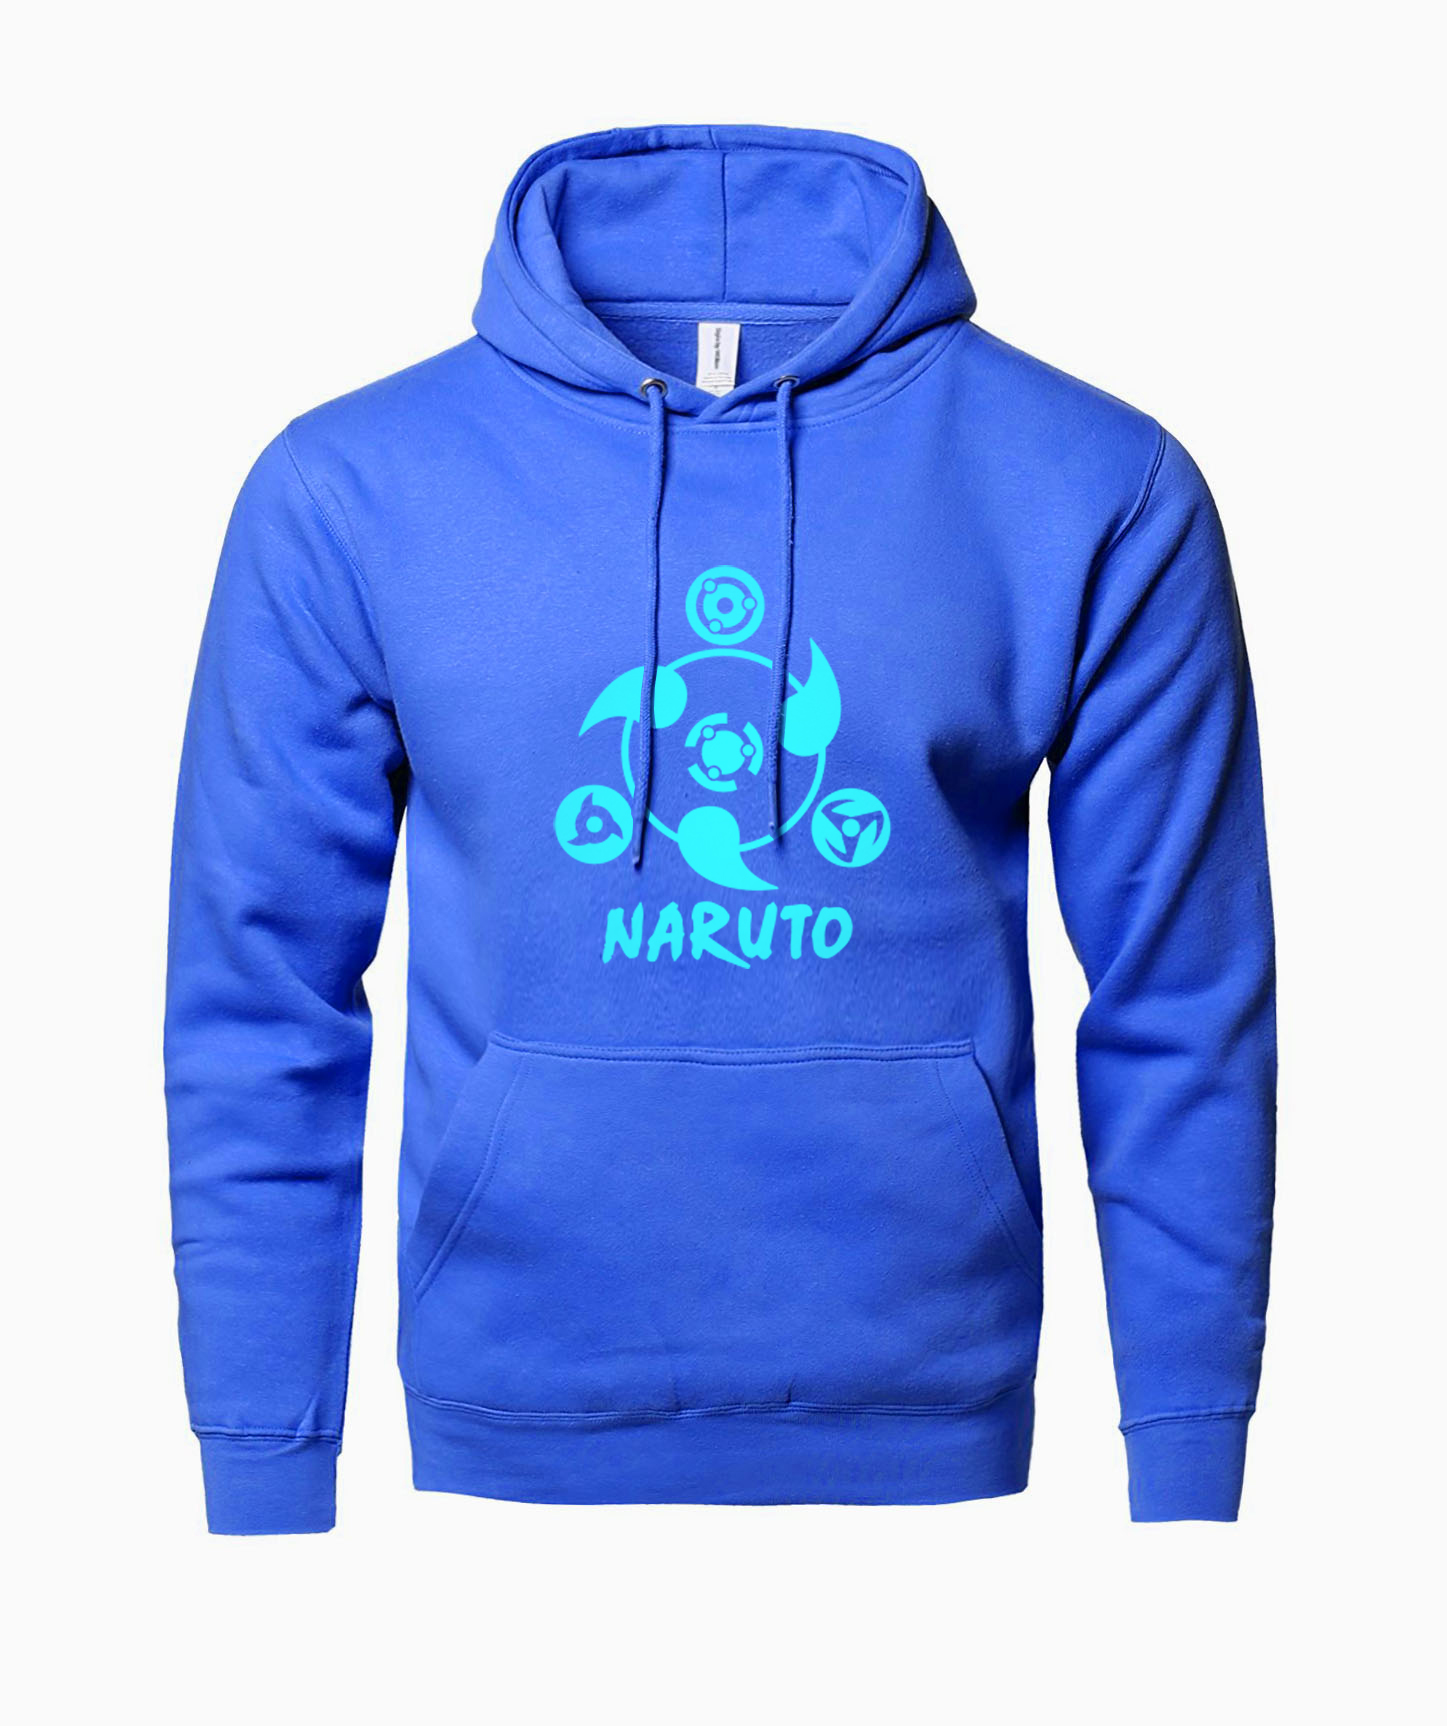 2019 Hot Sale Casual Sportes Hoodies Anime NARUTO Luminous Print Pullover Sweatshirts Crossfit Fitness Men Personalized Hoody